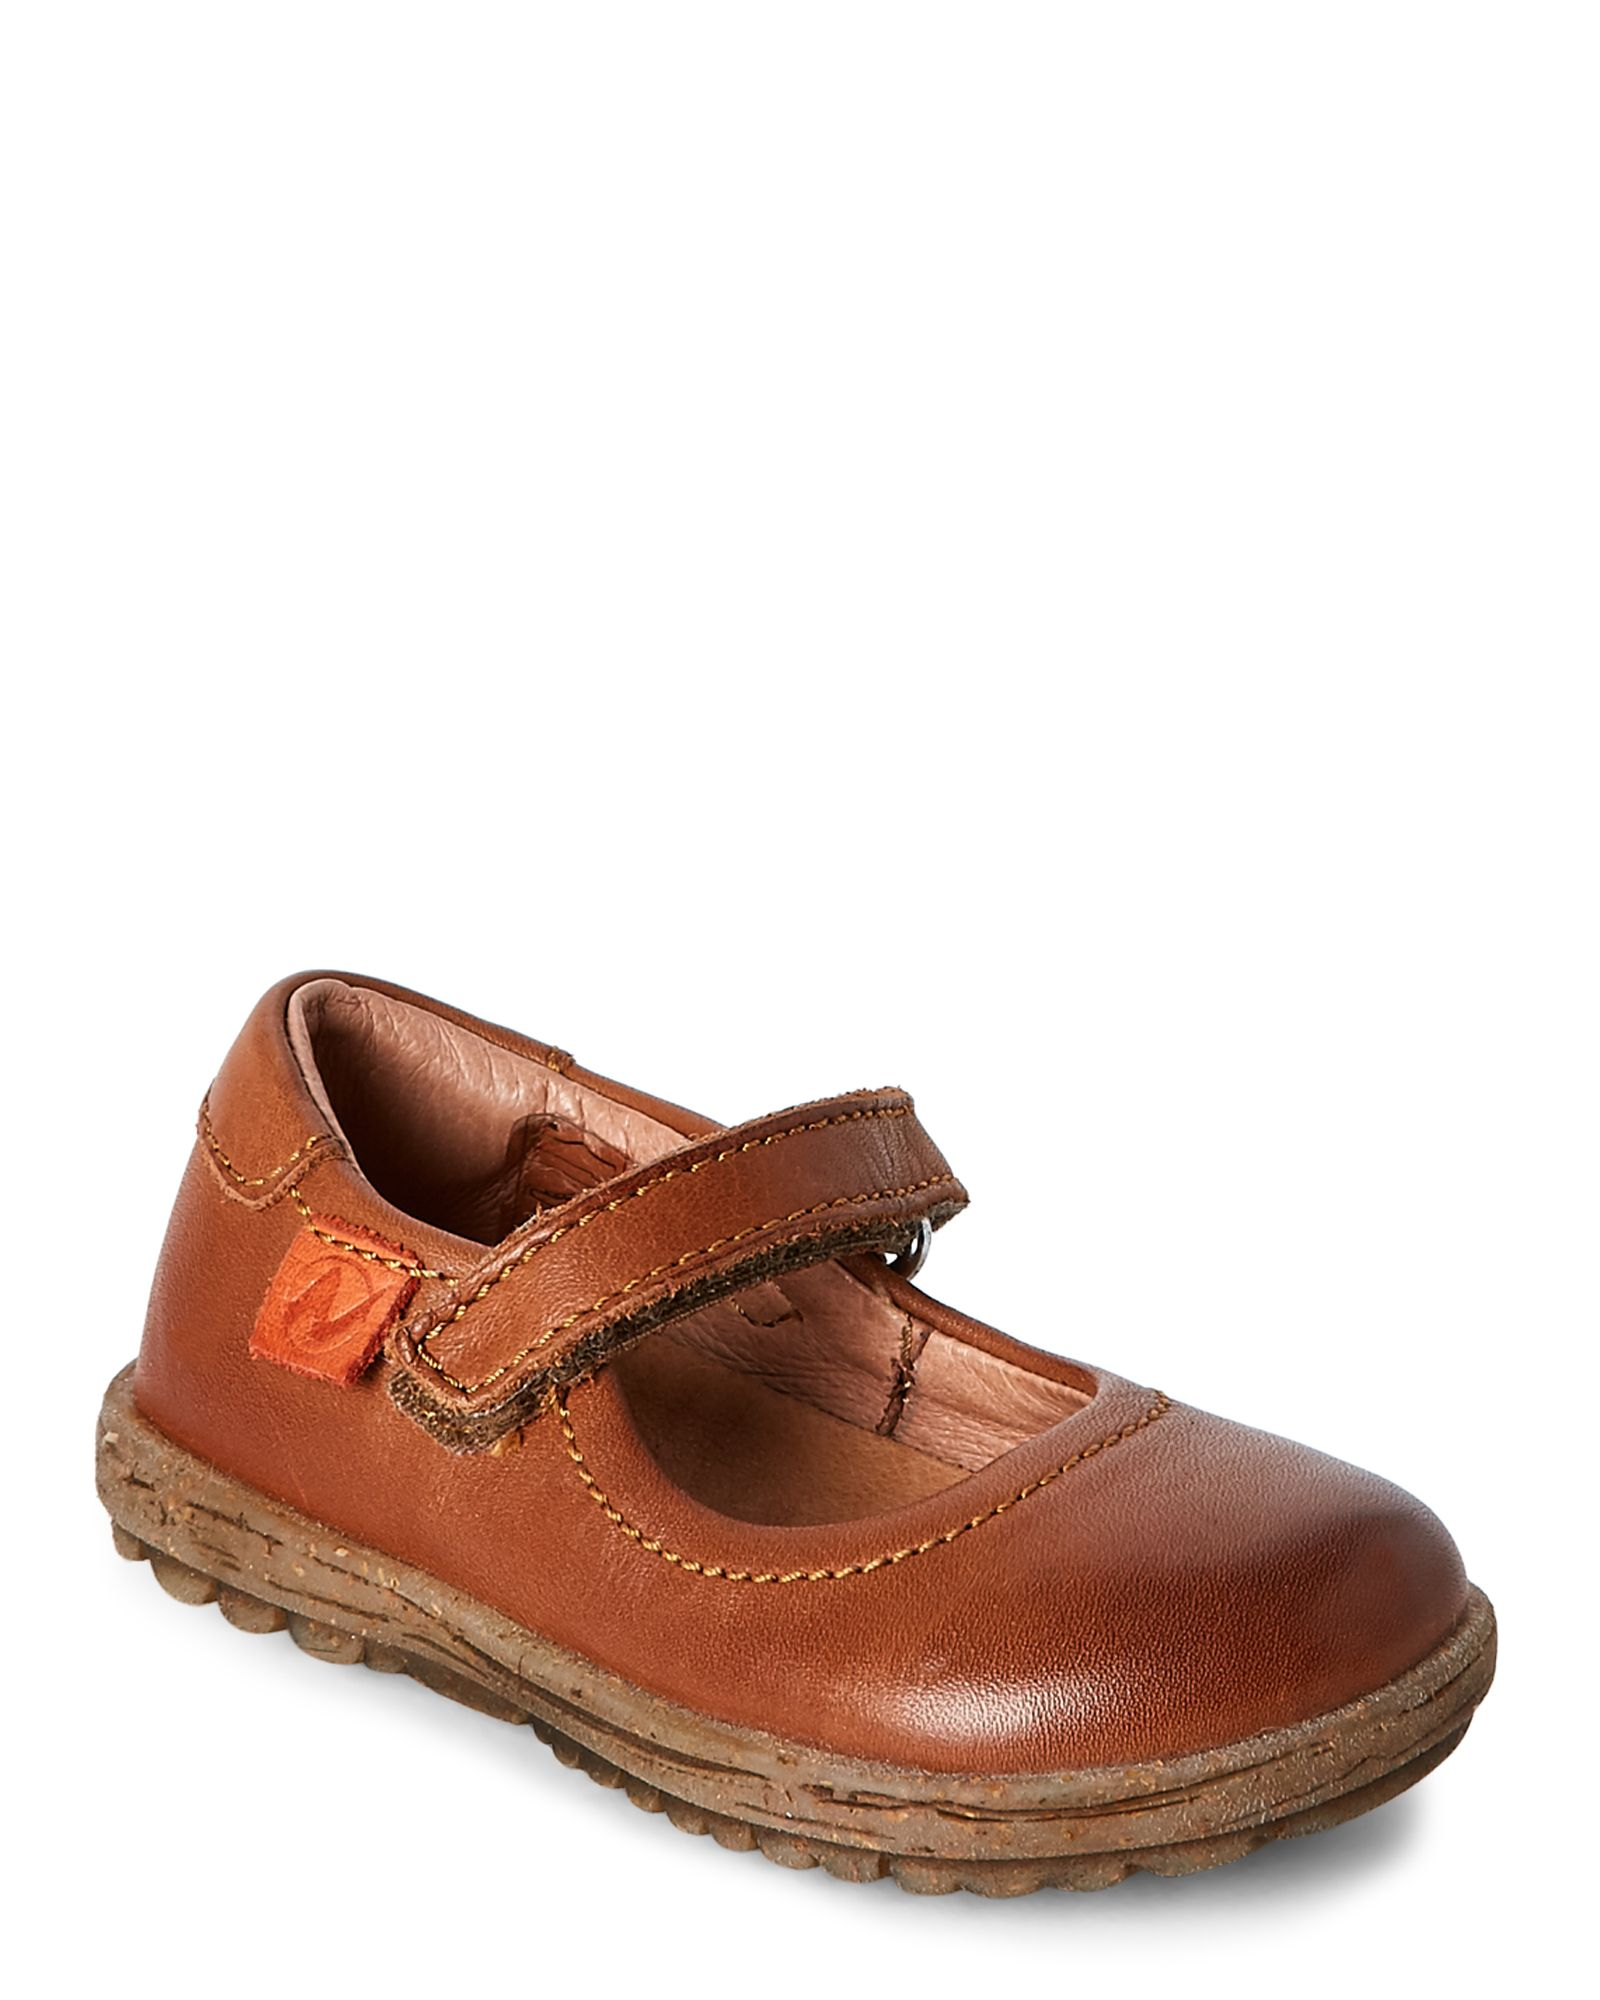 Naturino (Toddler Girls) Brown Mary Jane Shoes